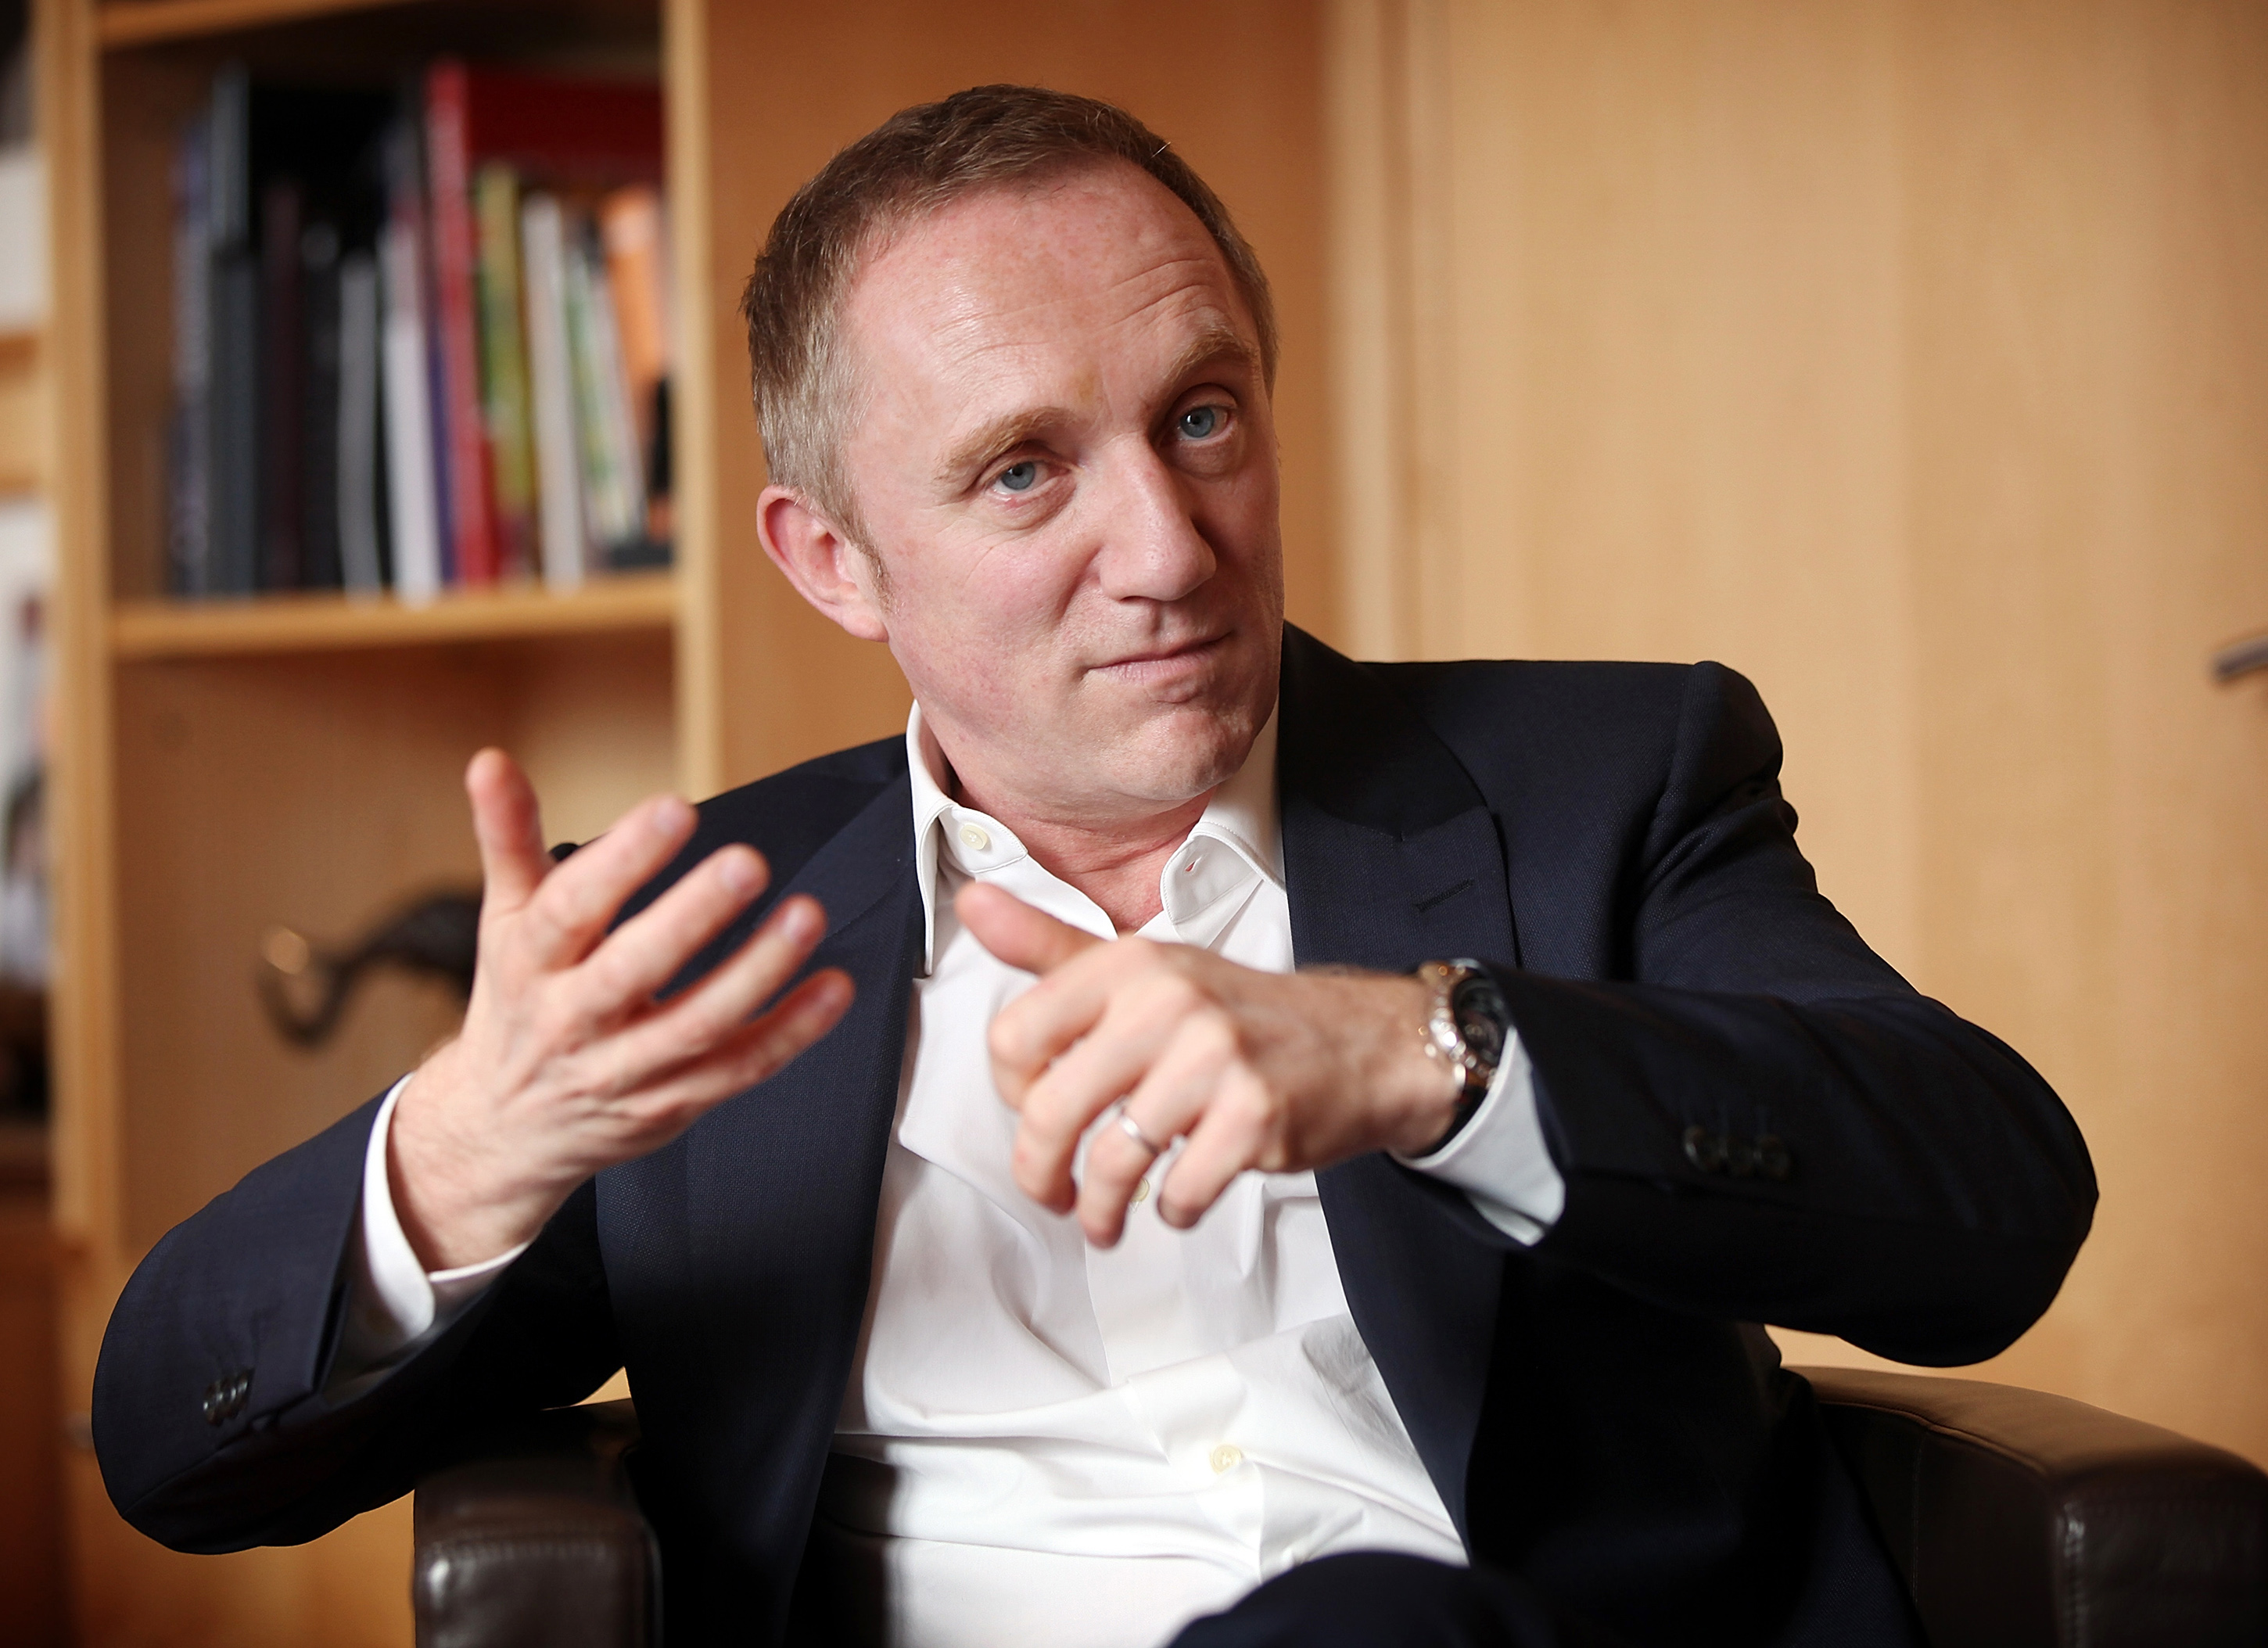 Interview With Francois-Henri Pinault CEO Of PPR SA